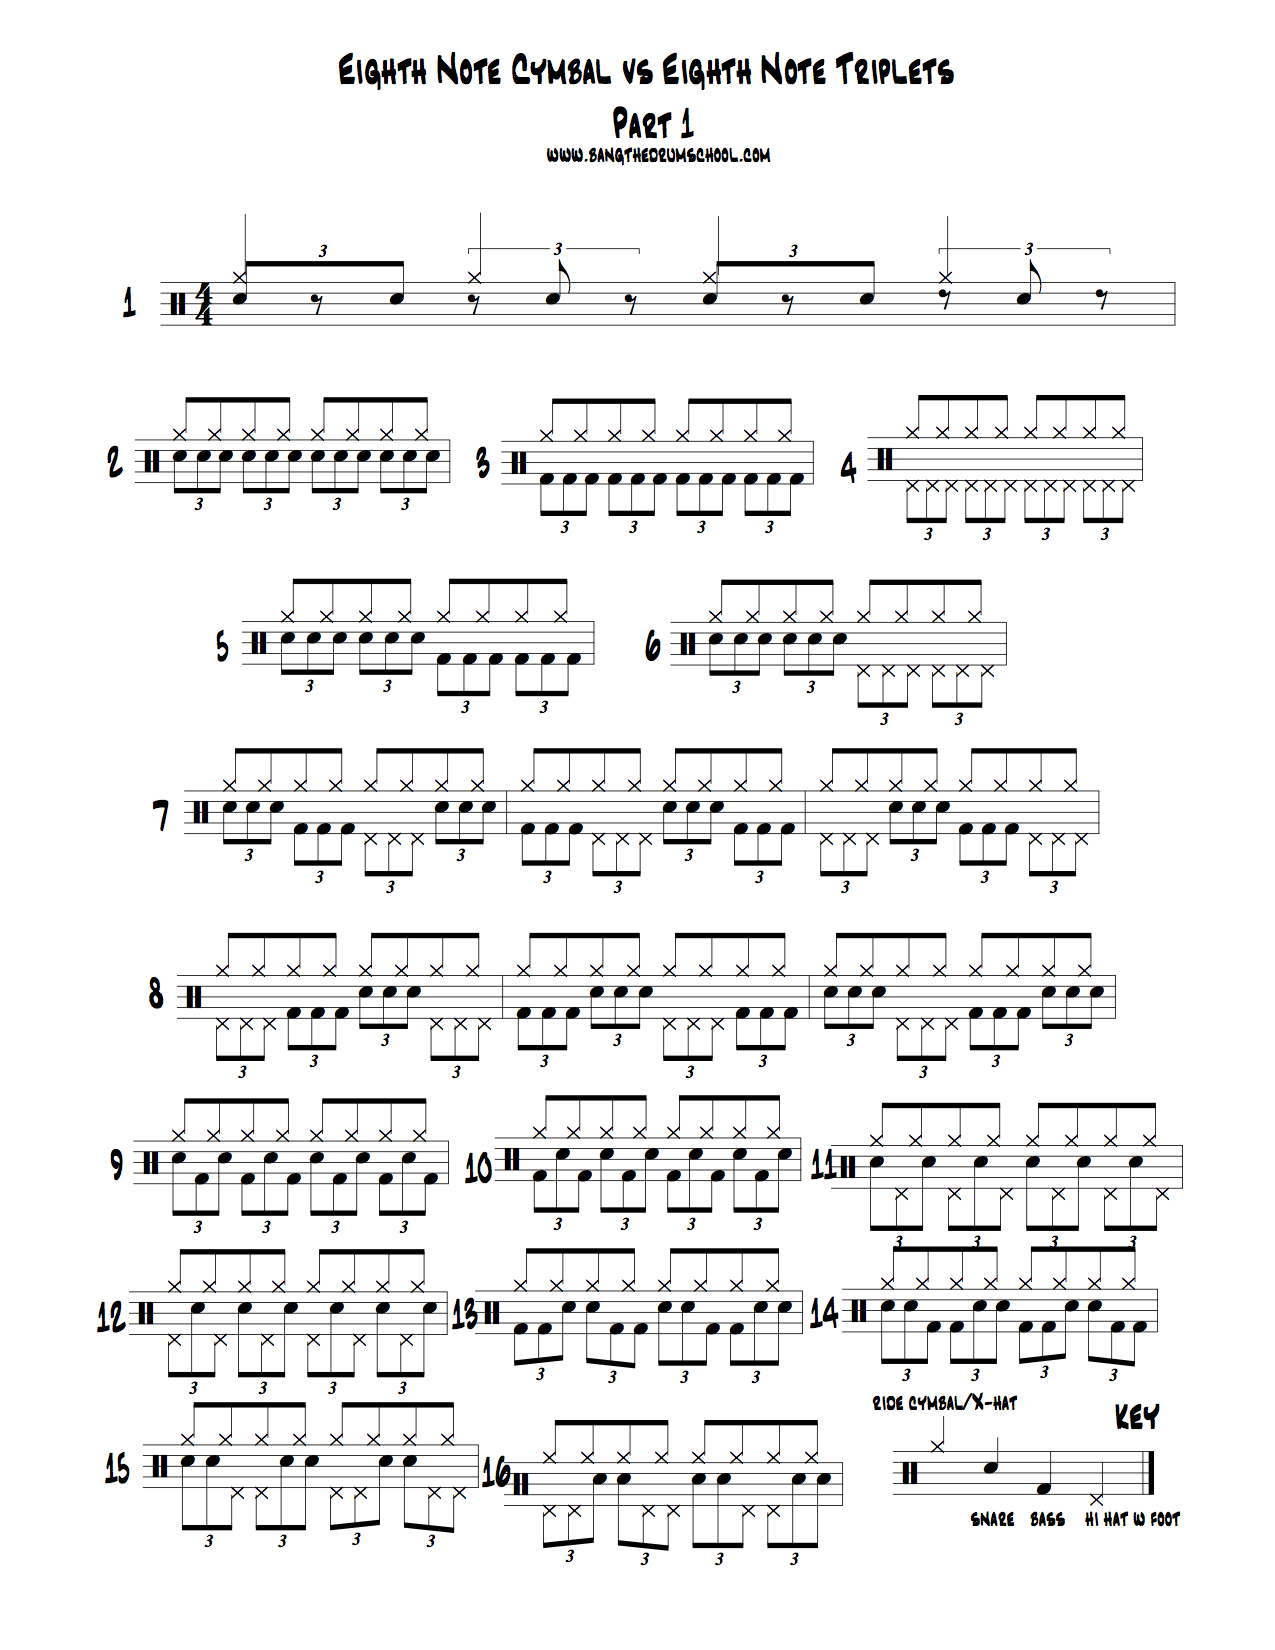 Eighth Note Triplets Vs Eighth Note Cymbal Pattern